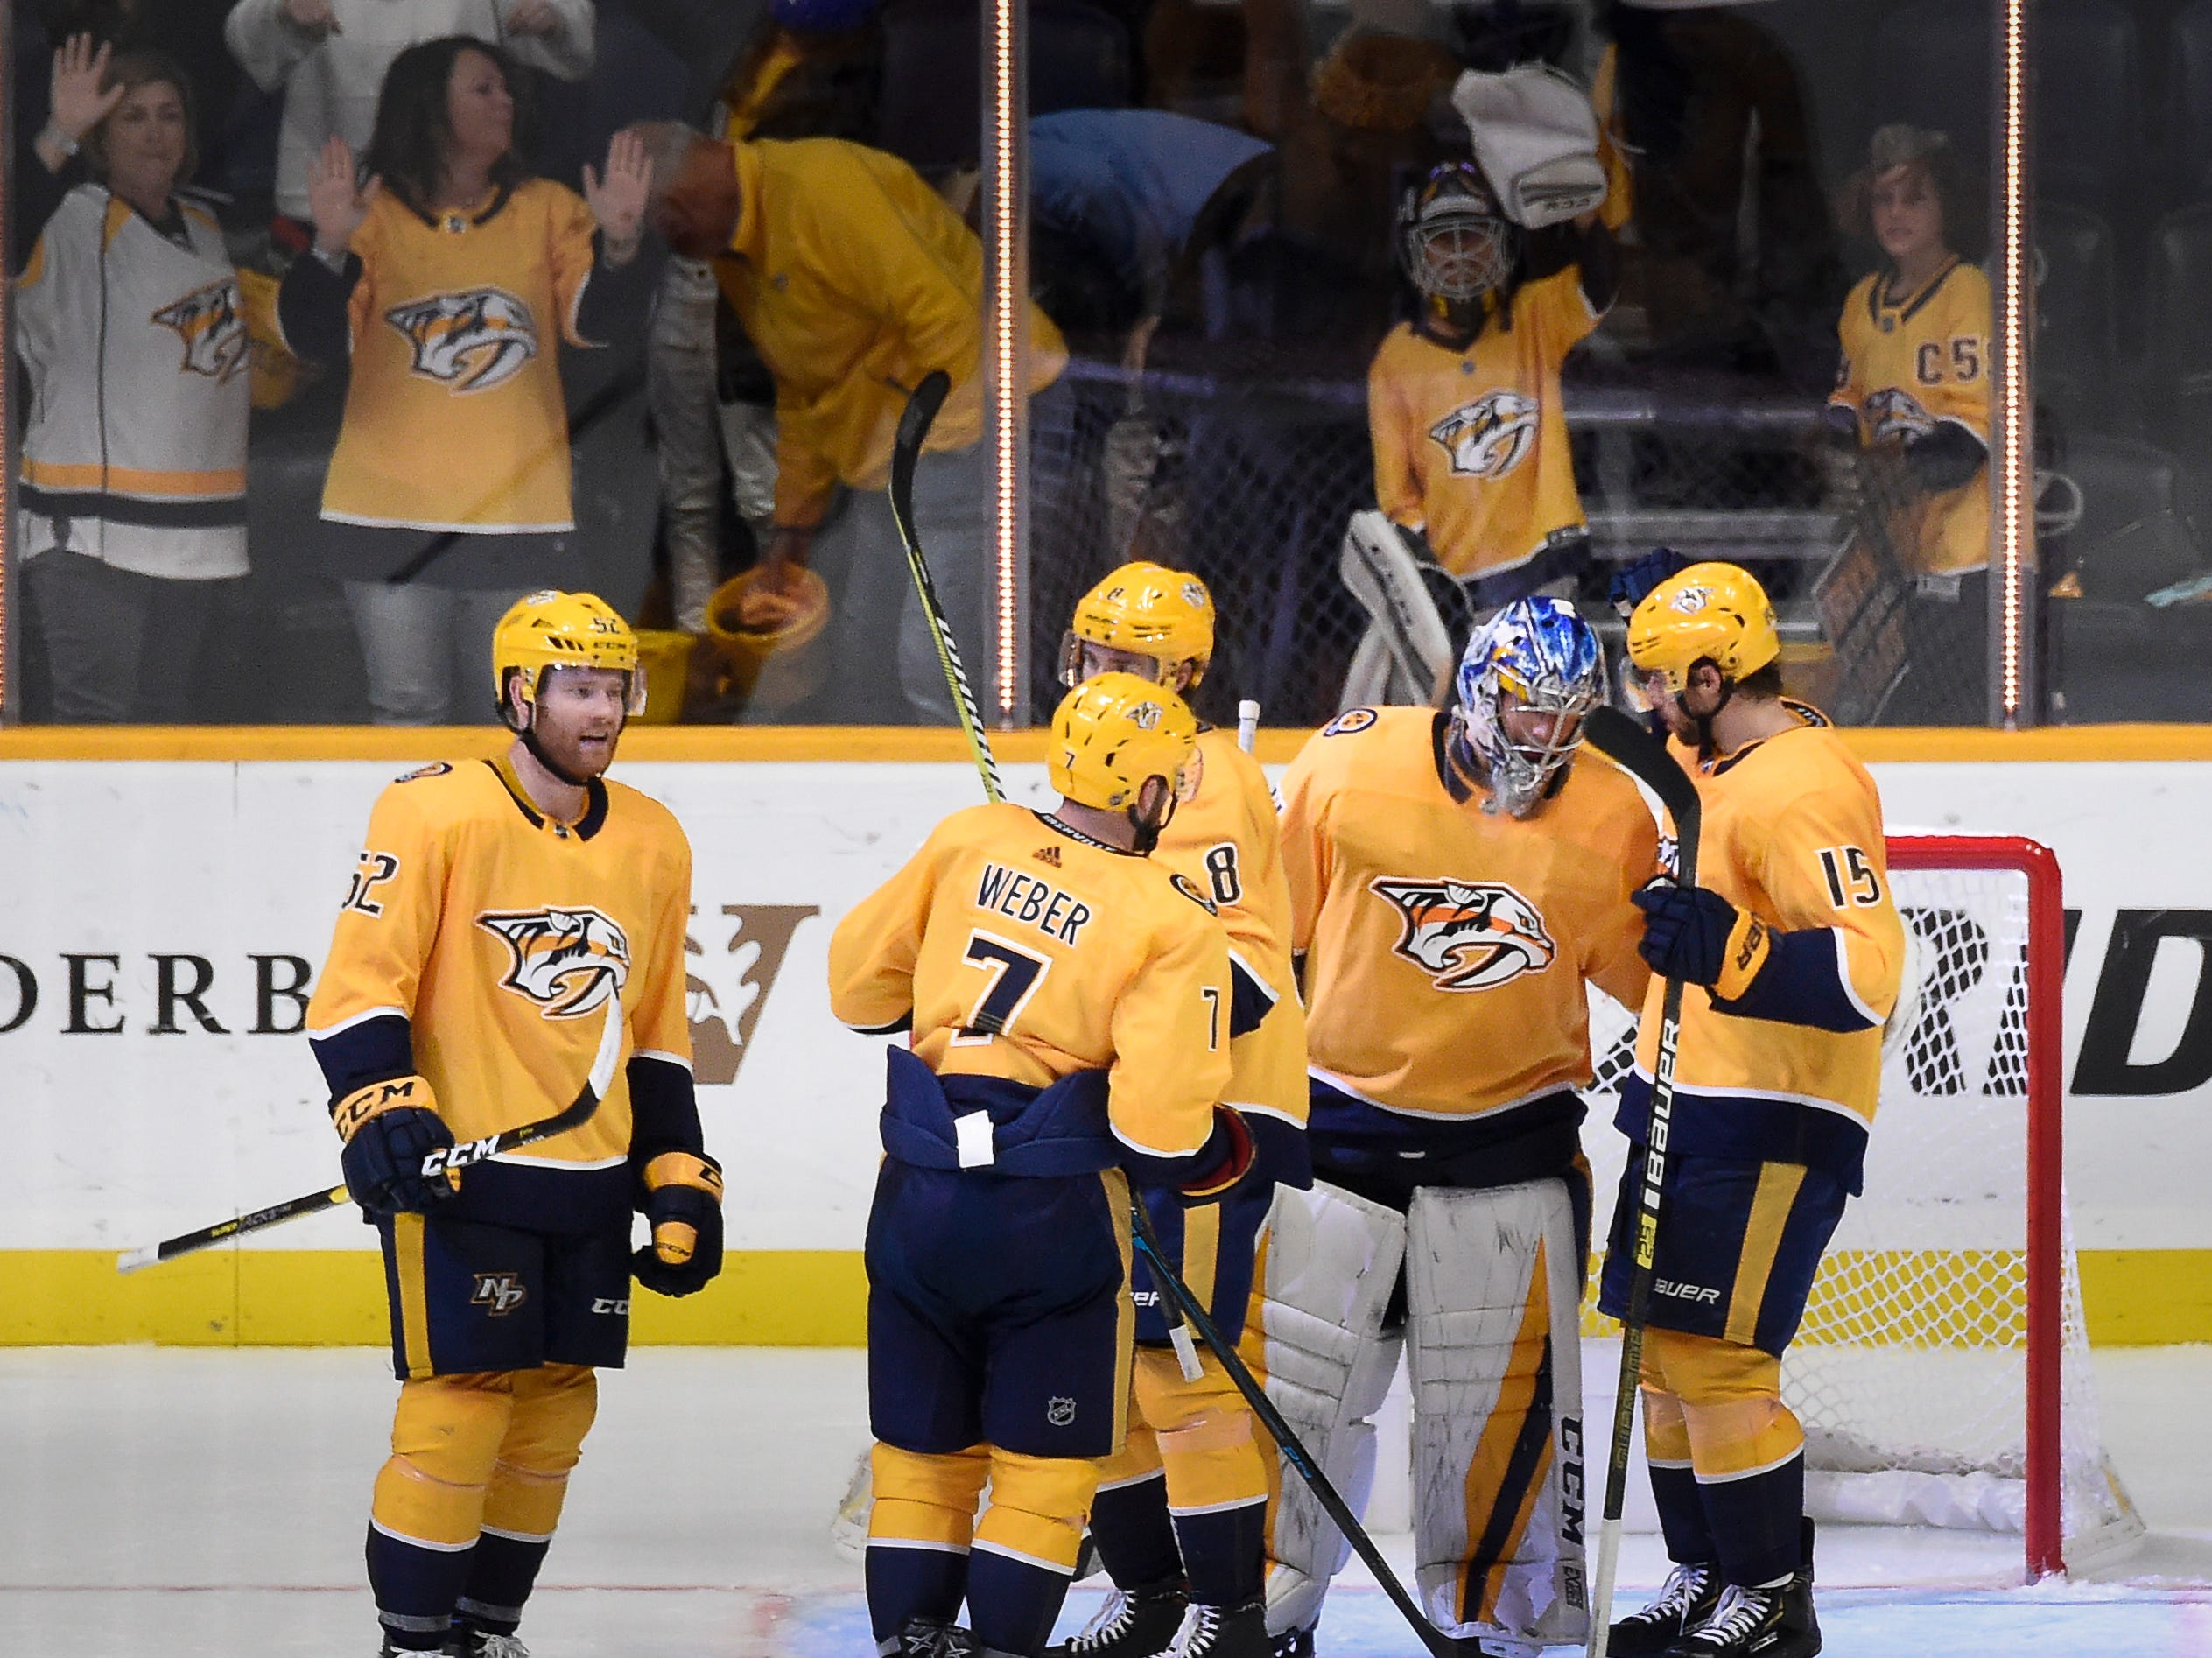 Predators teammates congratulate goaltender Juuse Saros (74) after their 4 to 1 victory over the Golden Knights at Bridgestone Arena Tuesday, Oct. 30, 2018, in Nashville, Tenn.